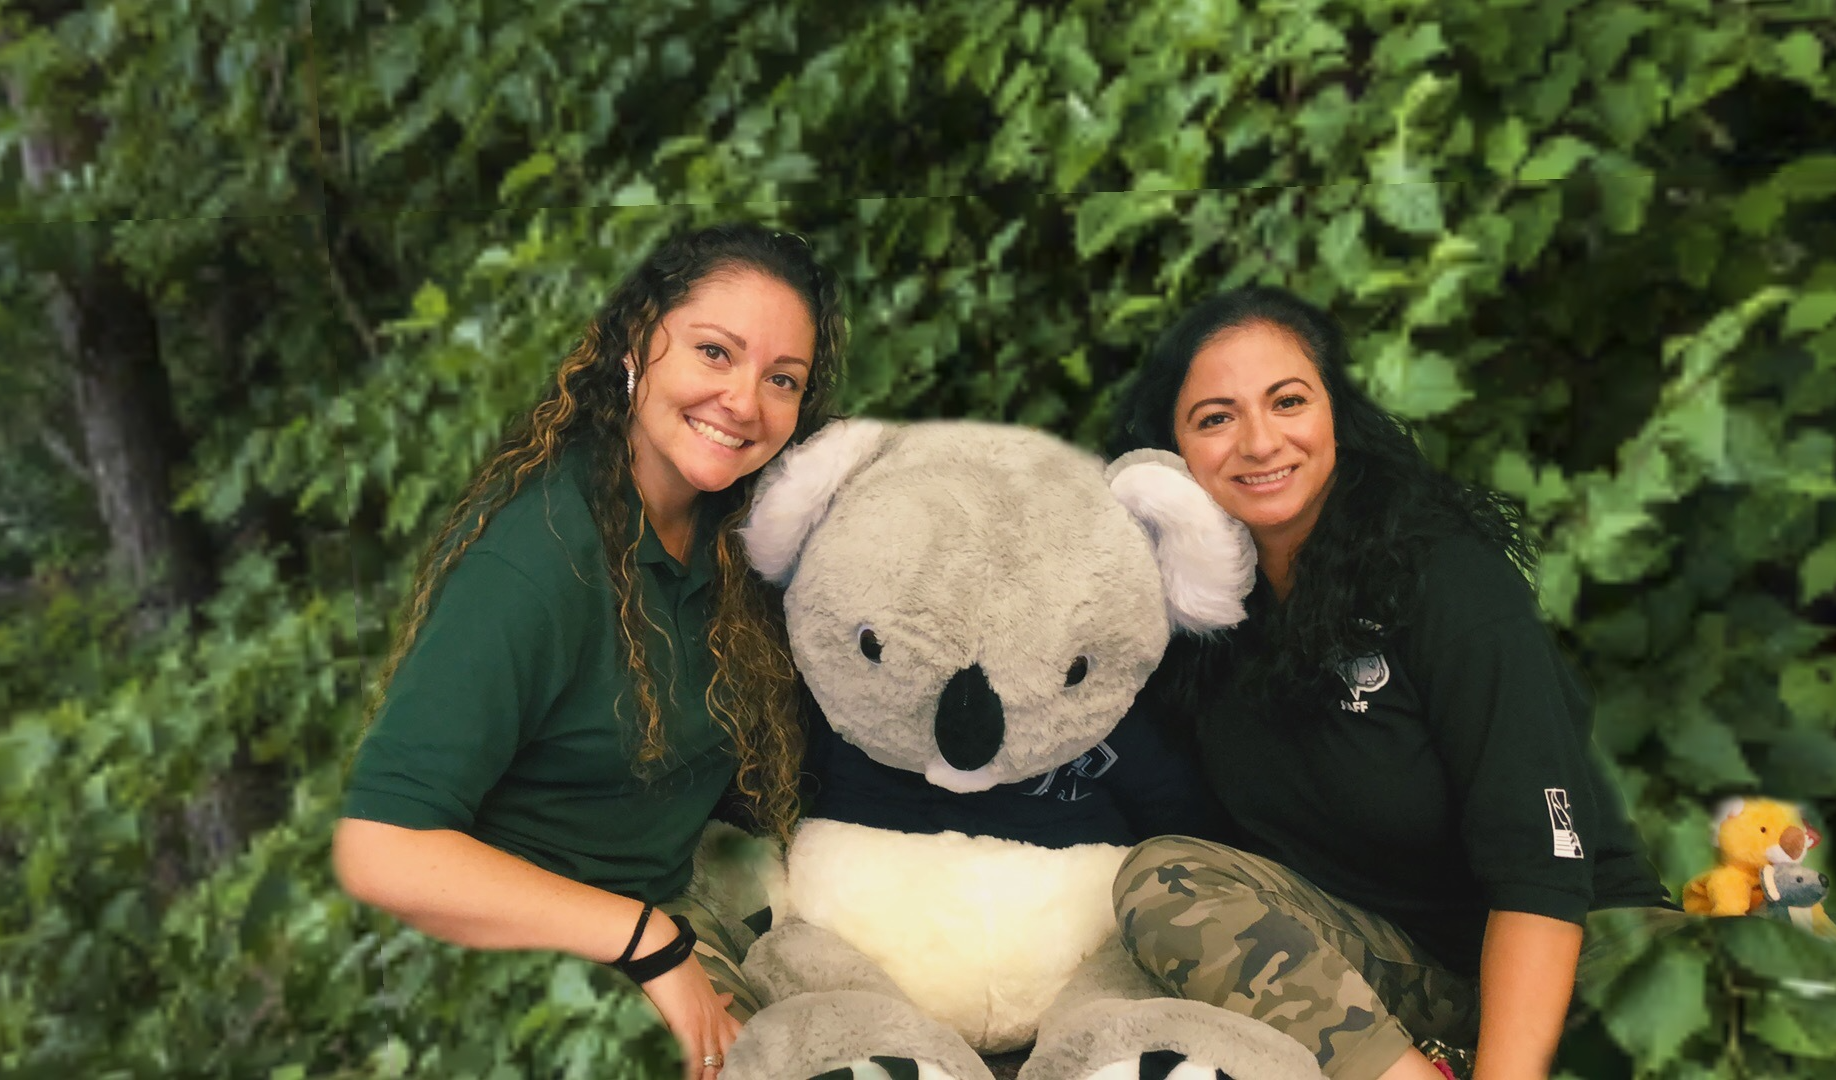 Office ladies Jennifer and Nancy hanging out with our giant koala.